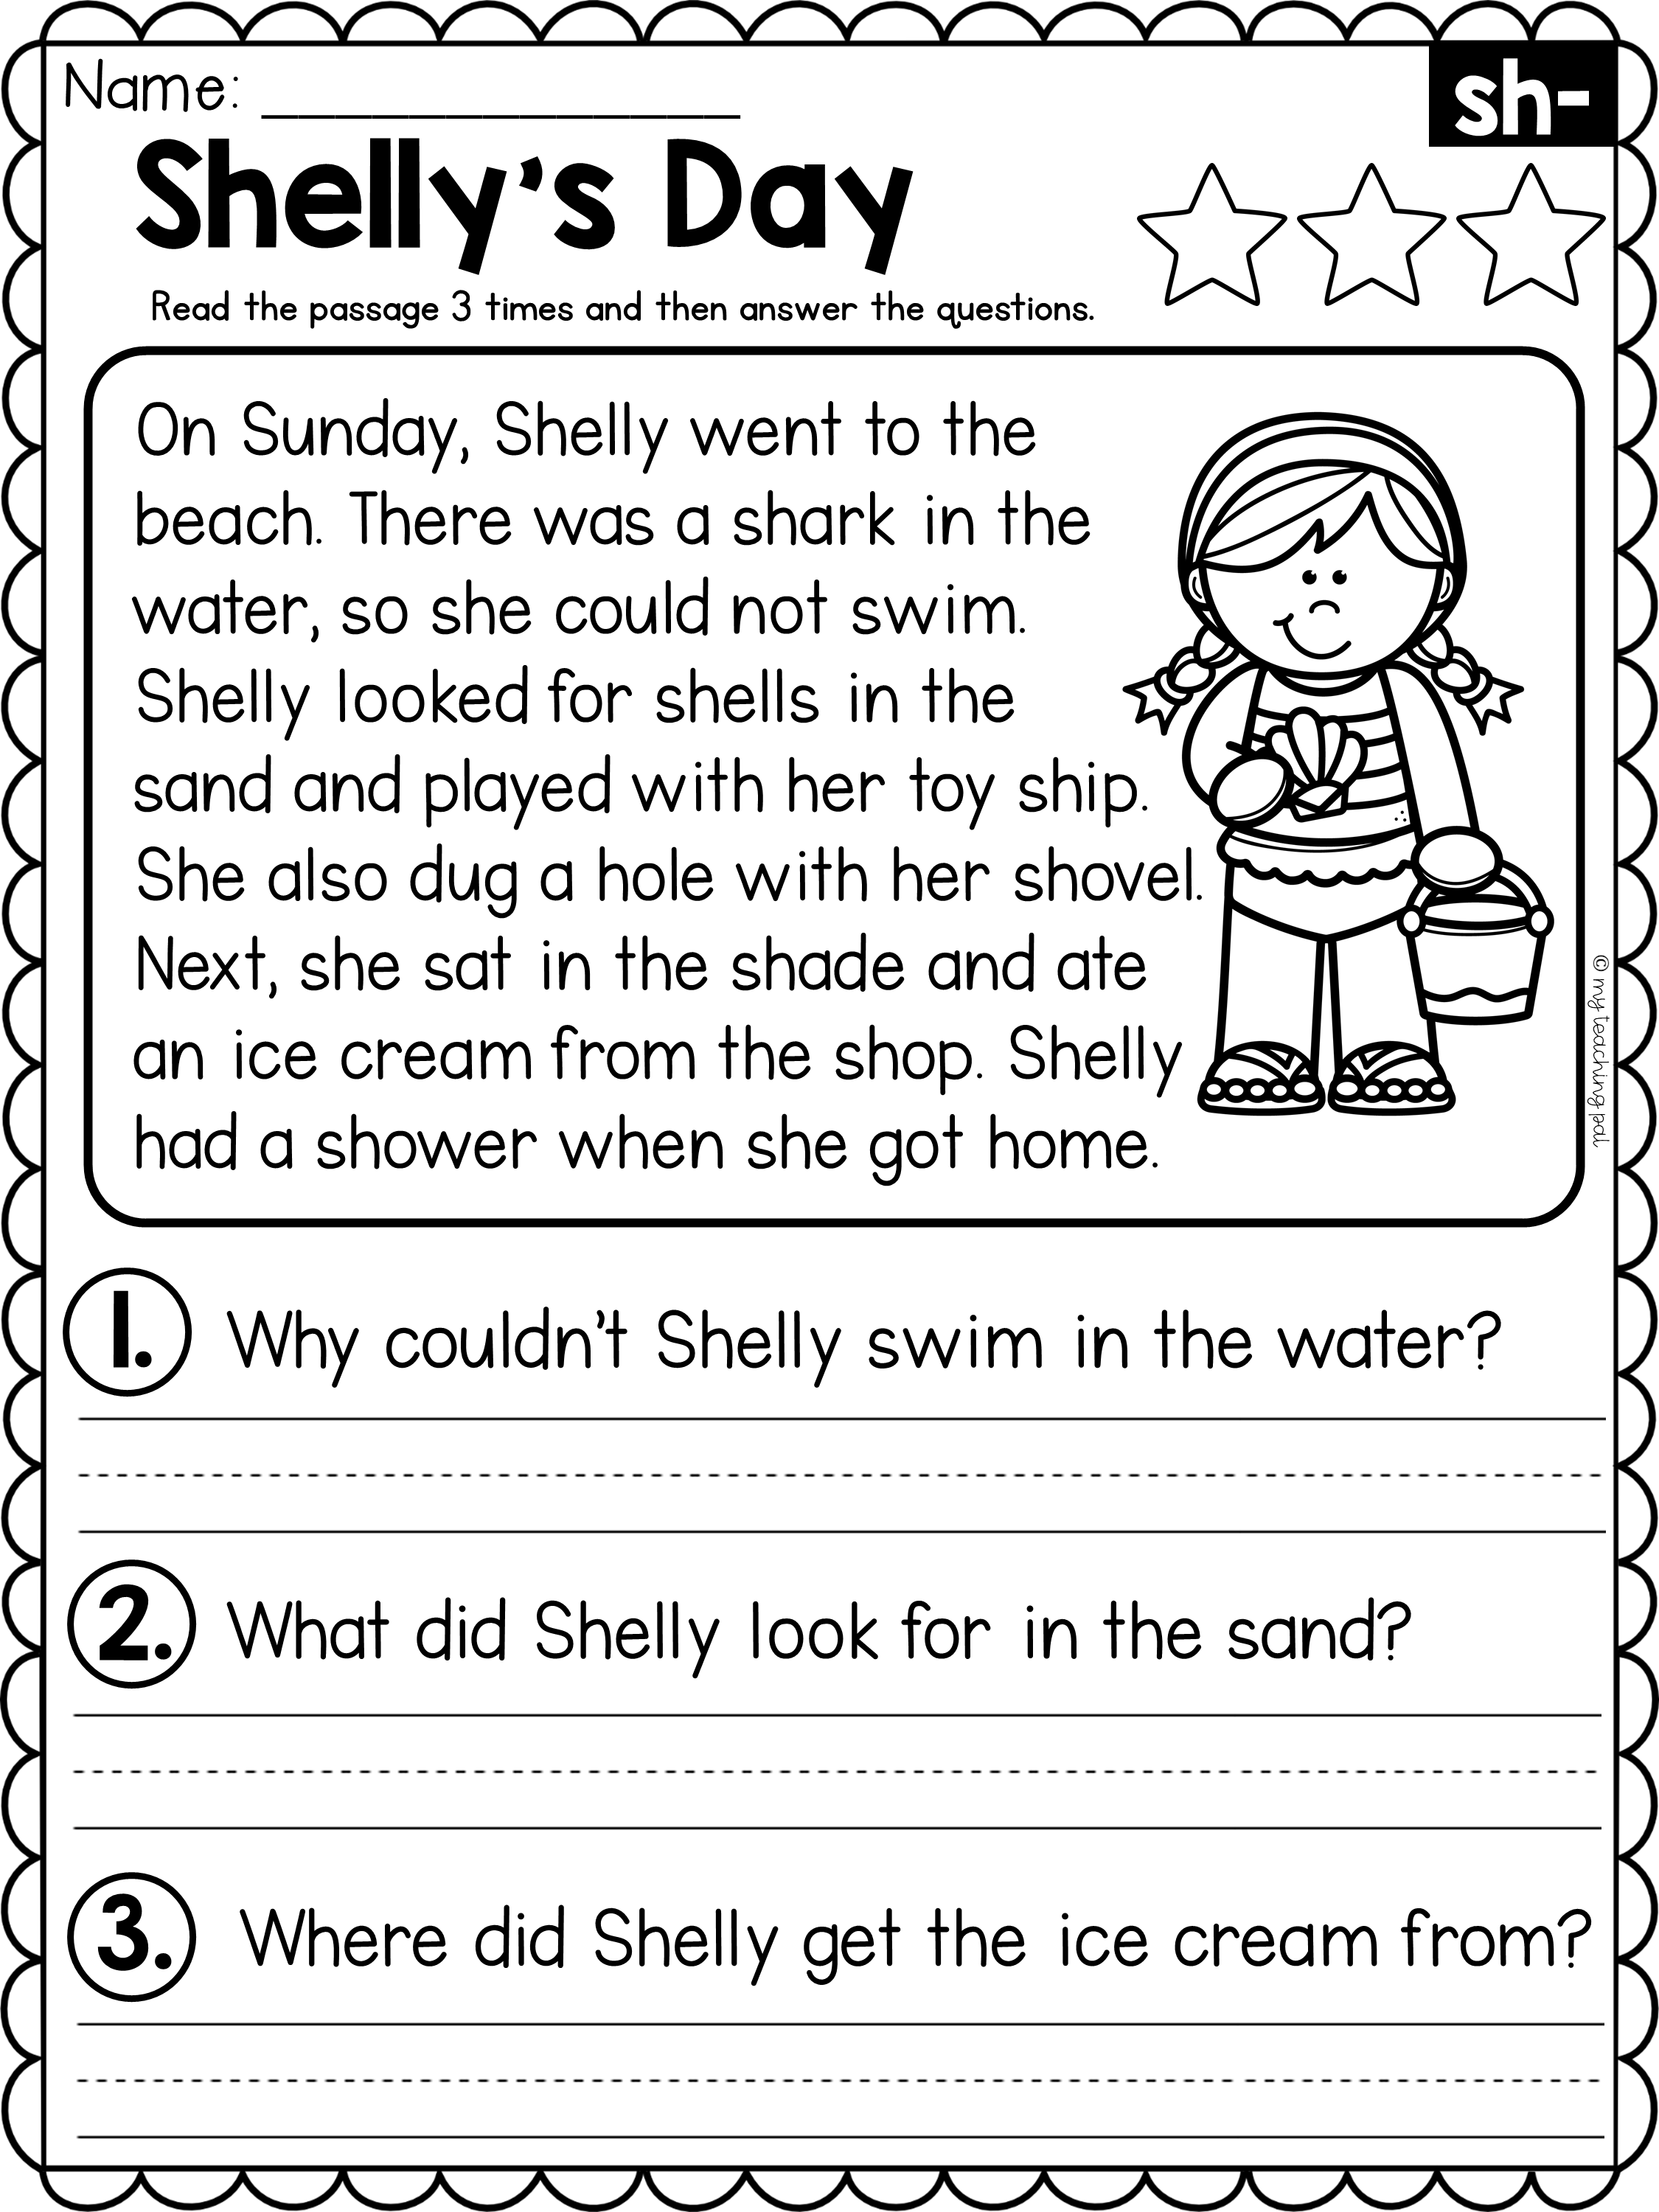 Sh Reading Comprehension Passage In 2021 Reading Comprehension Passages Reading Comprehension Passages Free Reading Fluency Passages [ 3000 x 2250 Pixel ]